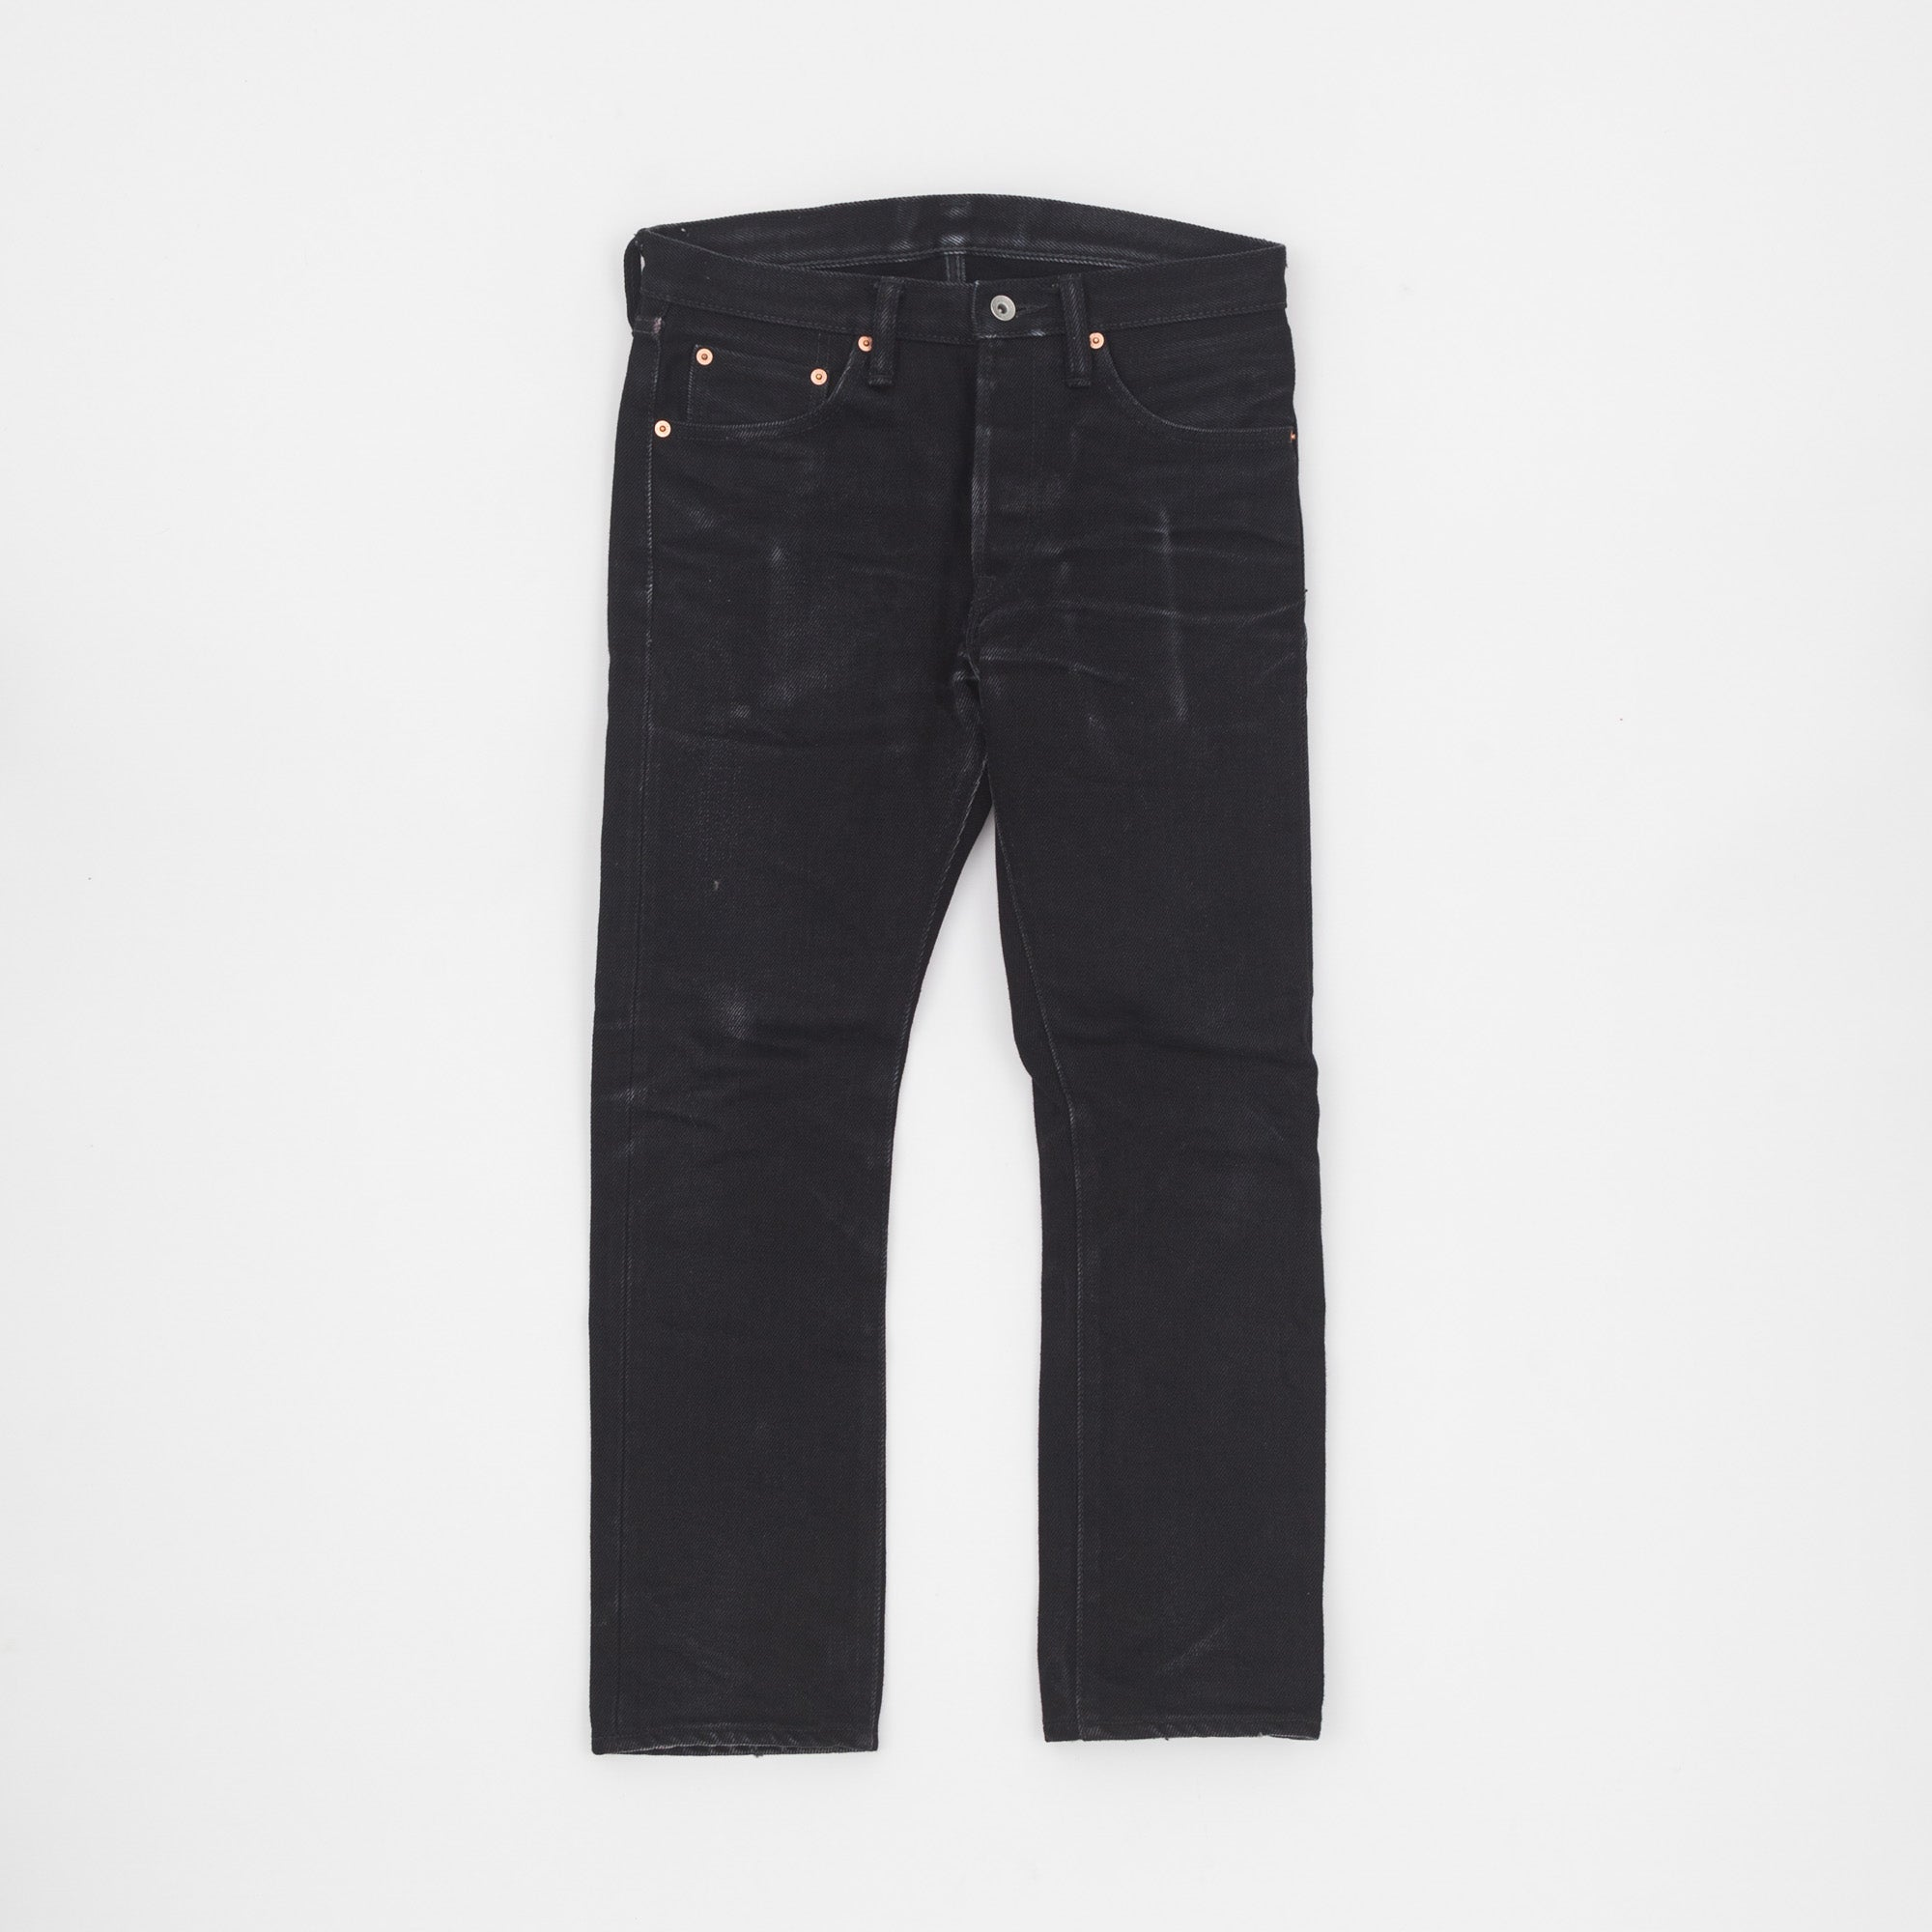 IH-555-03 21oz Super Slim Selvedge Denim